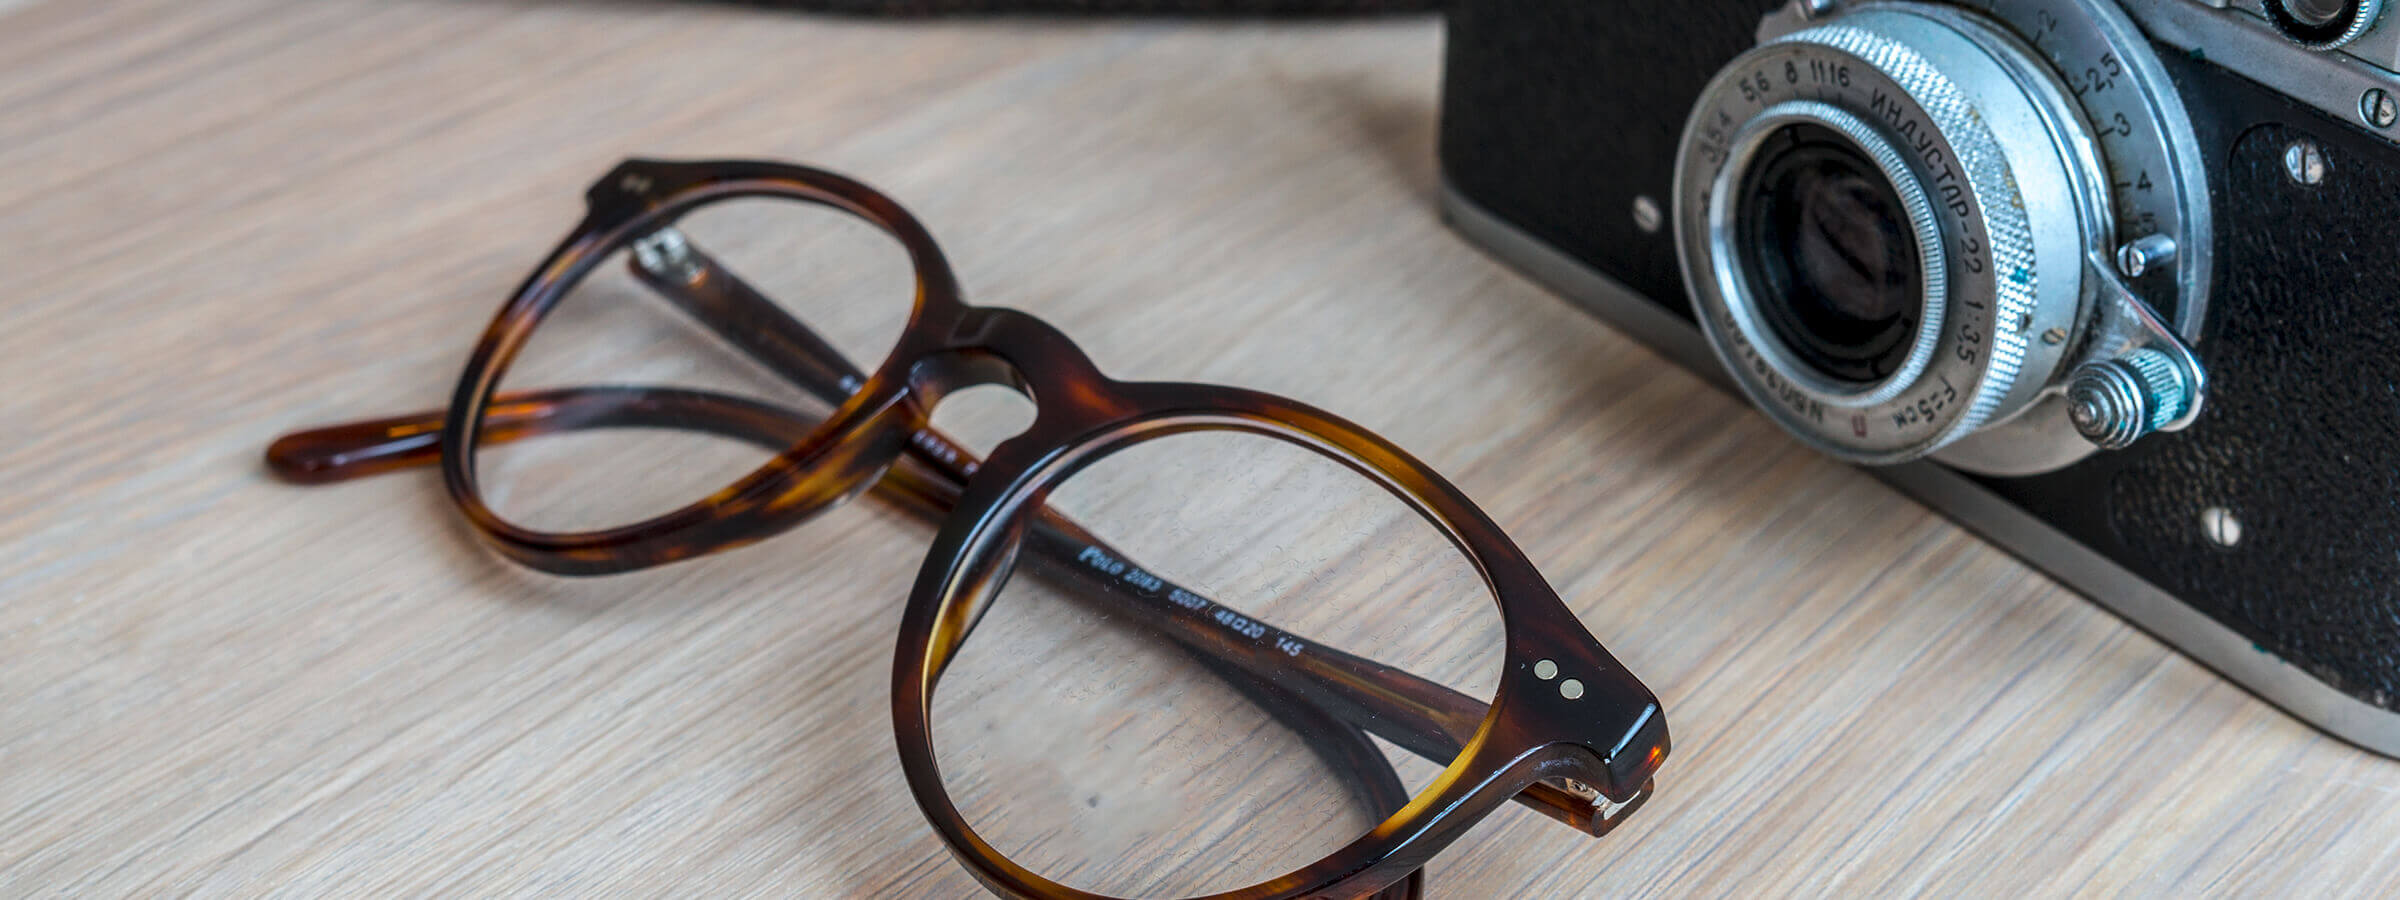 A pair of glasses lying next to a camera